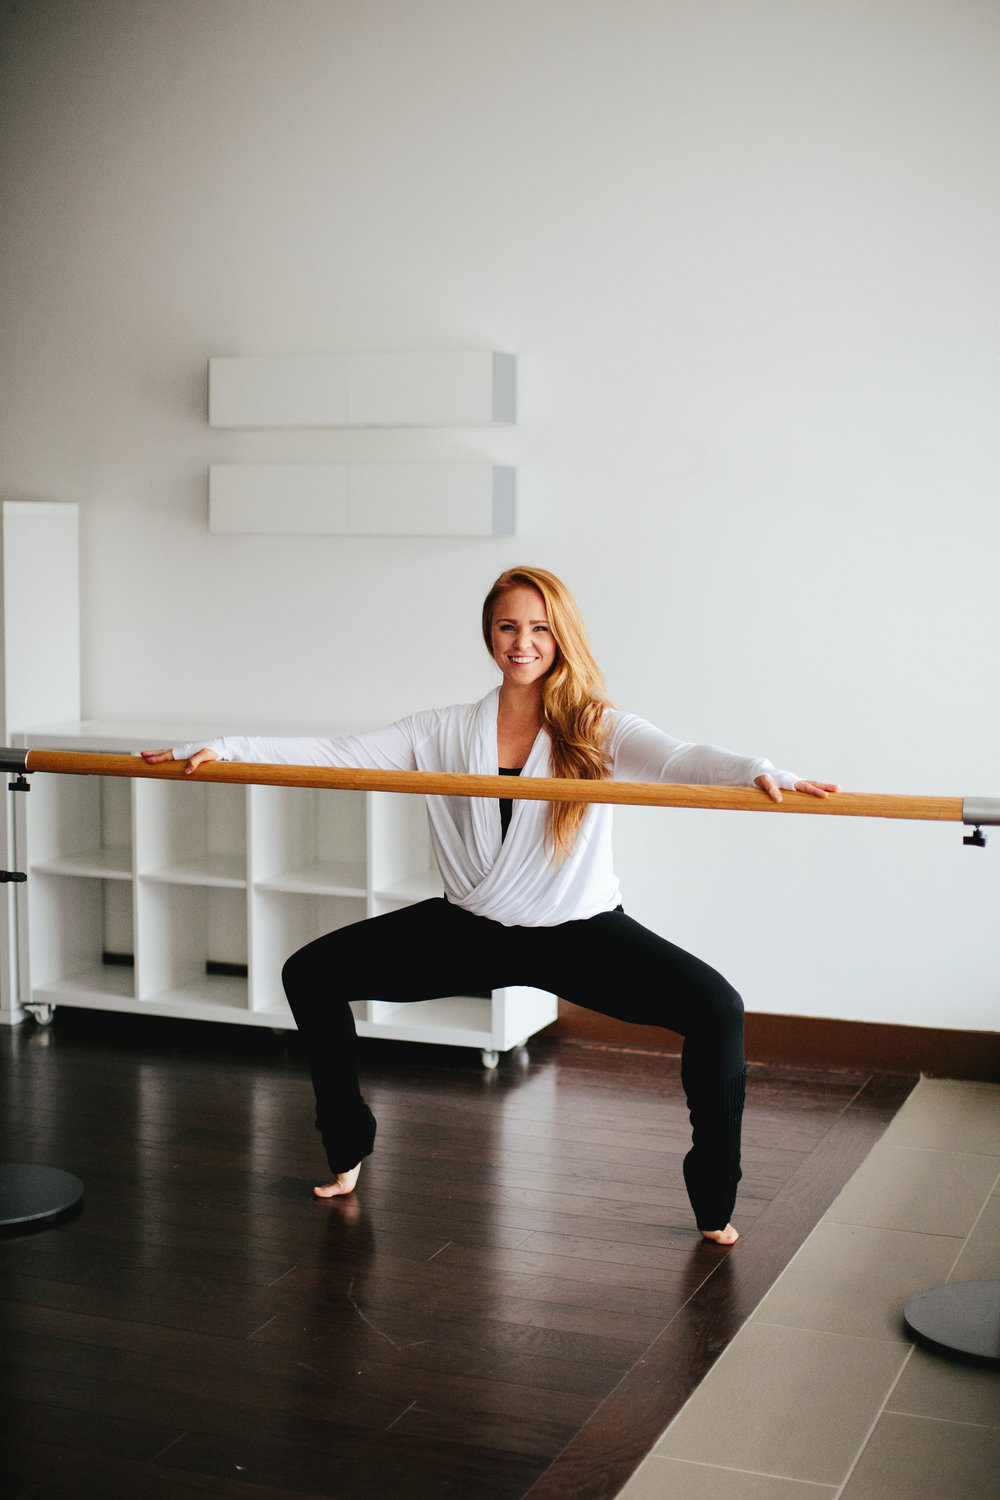 Horse Pose with a heel lift shown by one of our Raising the Barre instructors, Charlee.